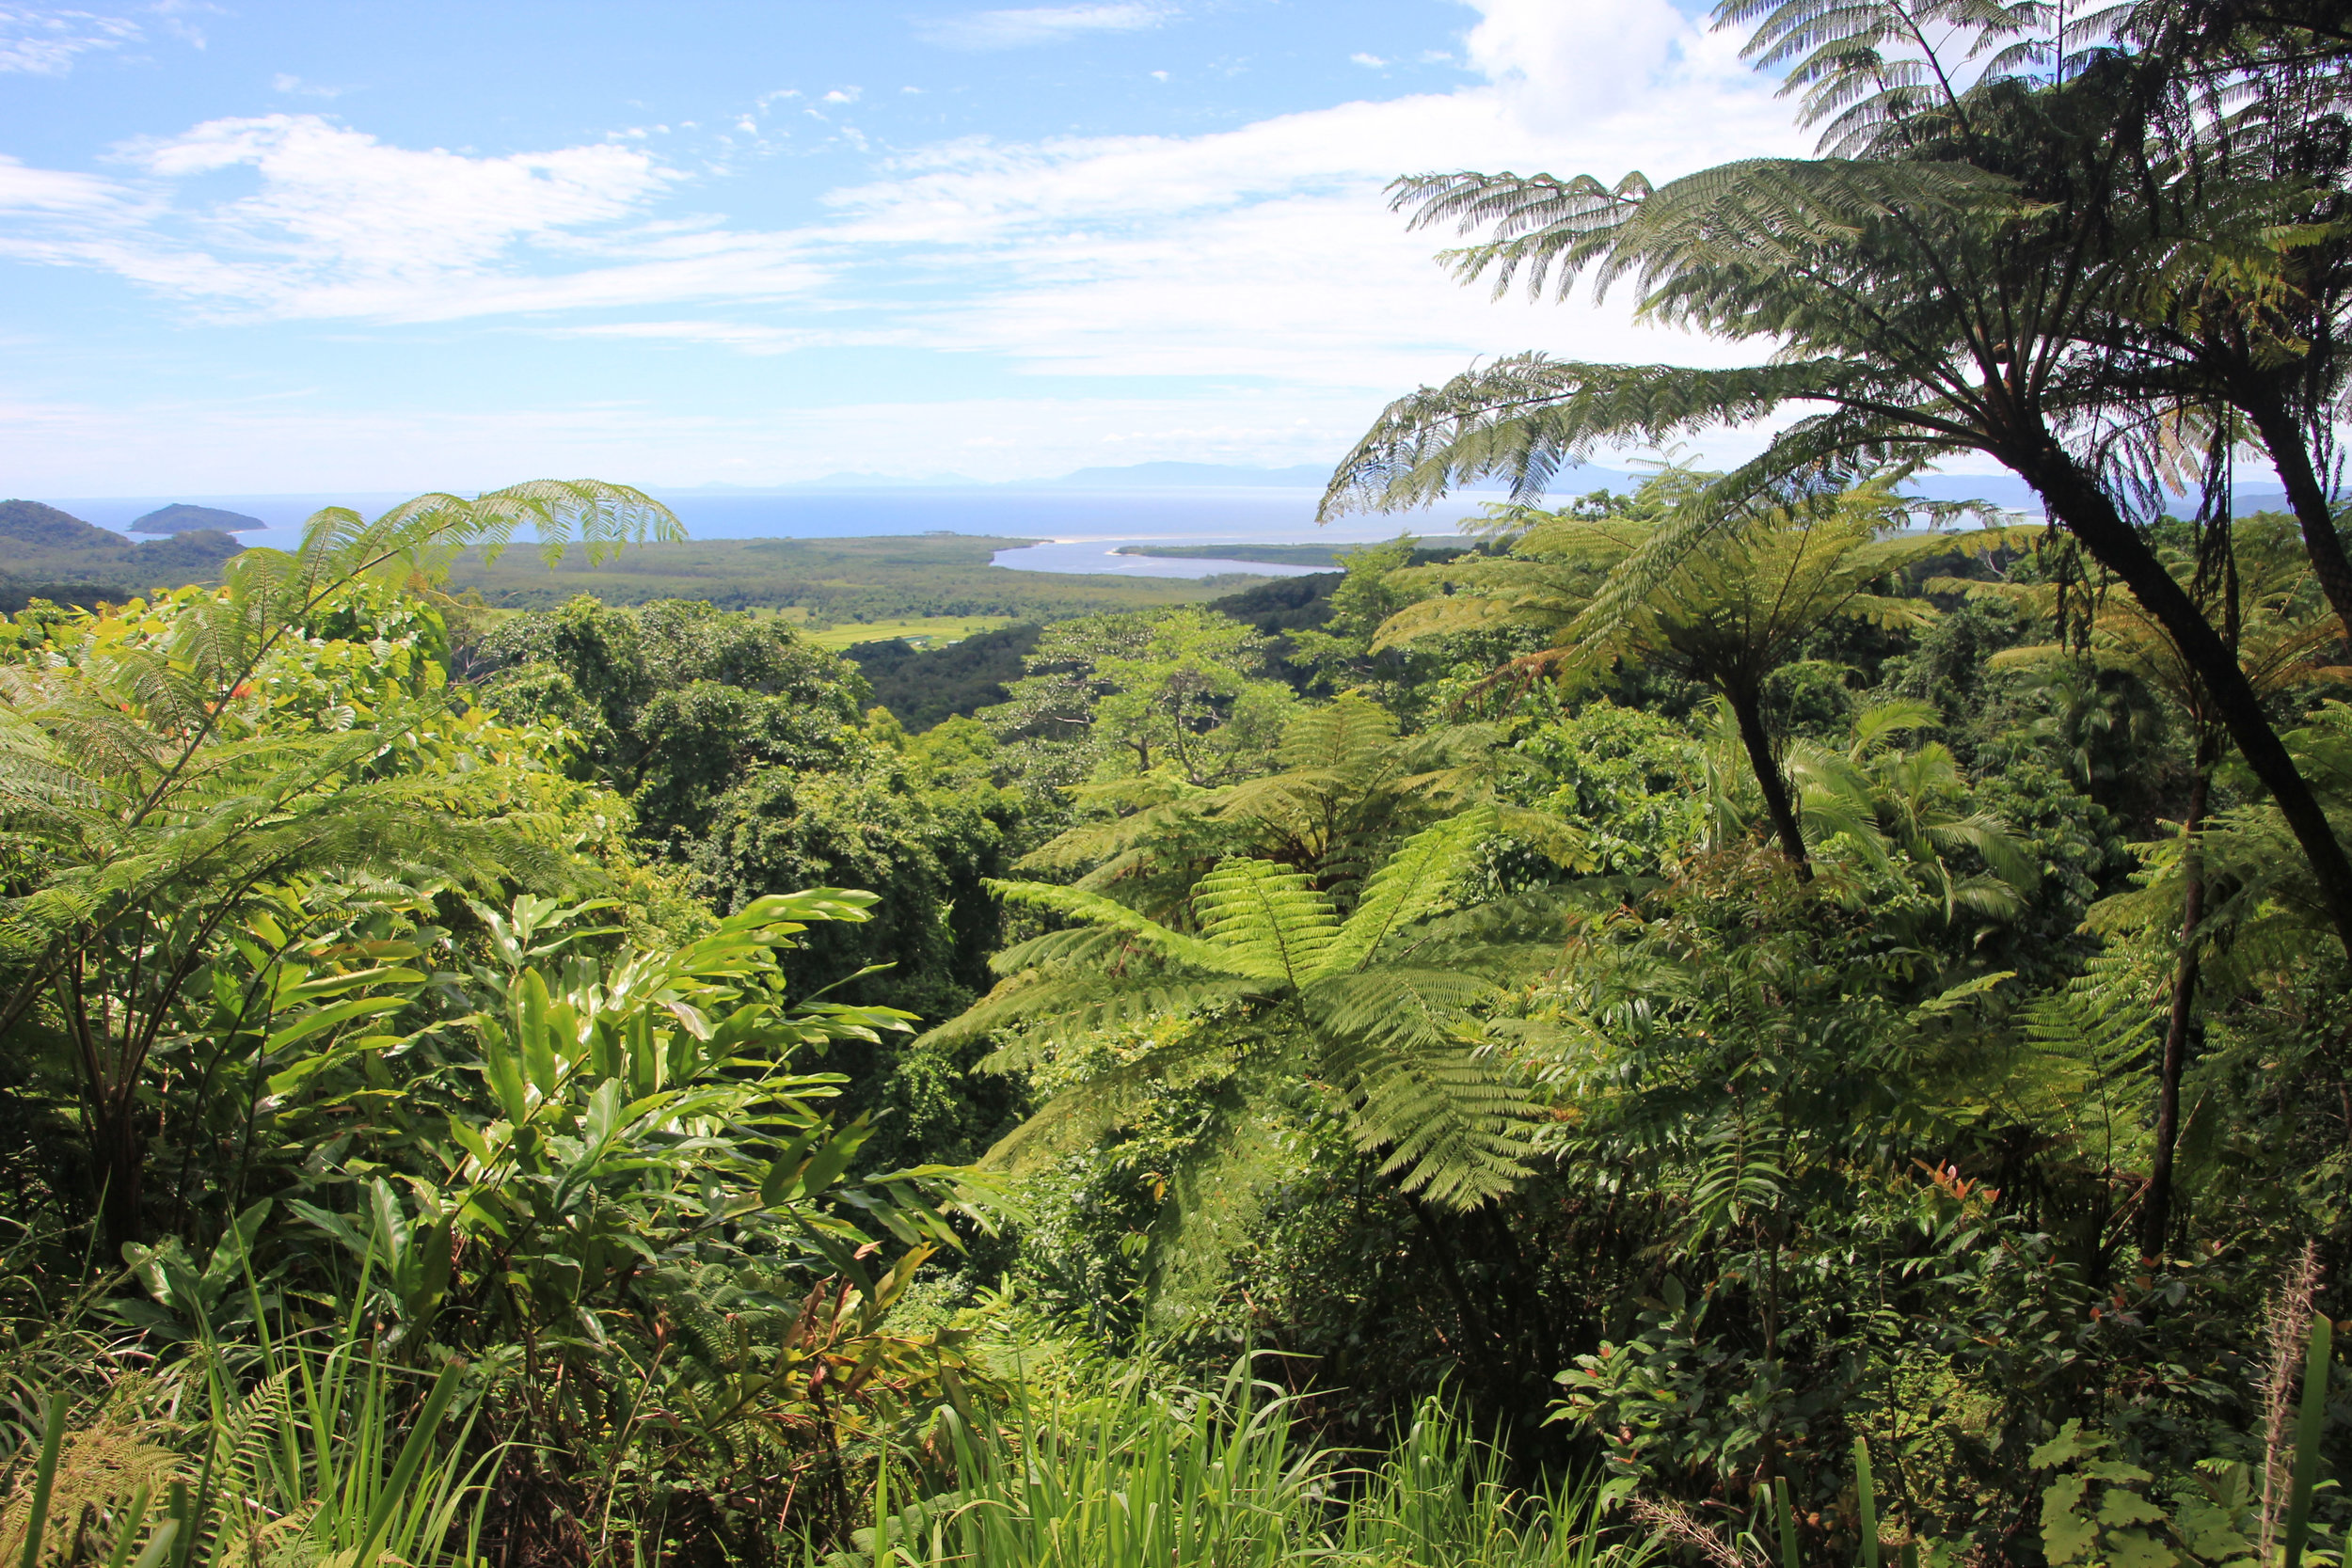 Daintree River and the tropical forest